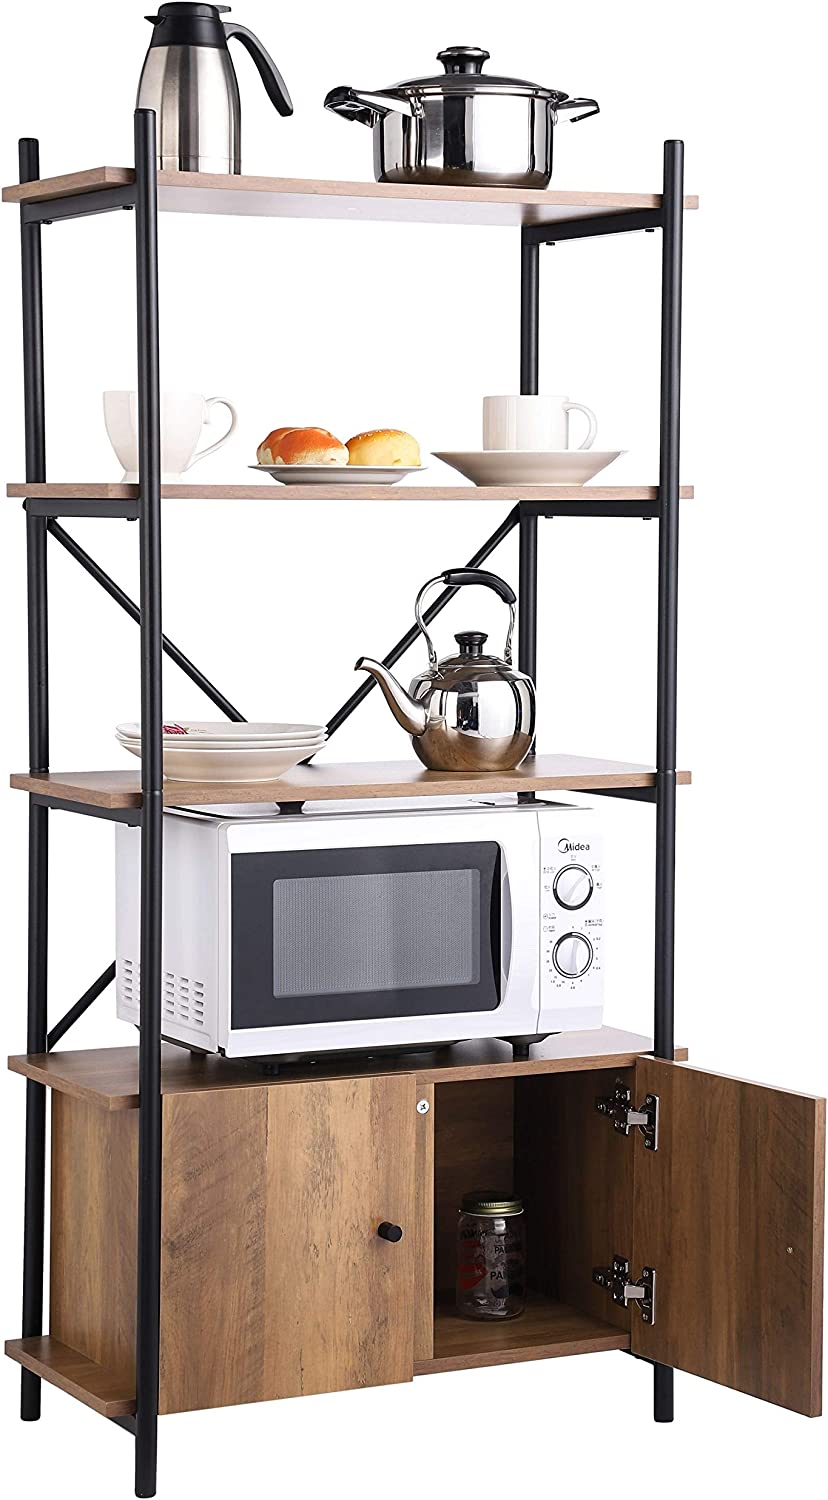 Grepatio Kitchen Bakers Rack Indus Multifunctional Cabinet Online Credence limited product with